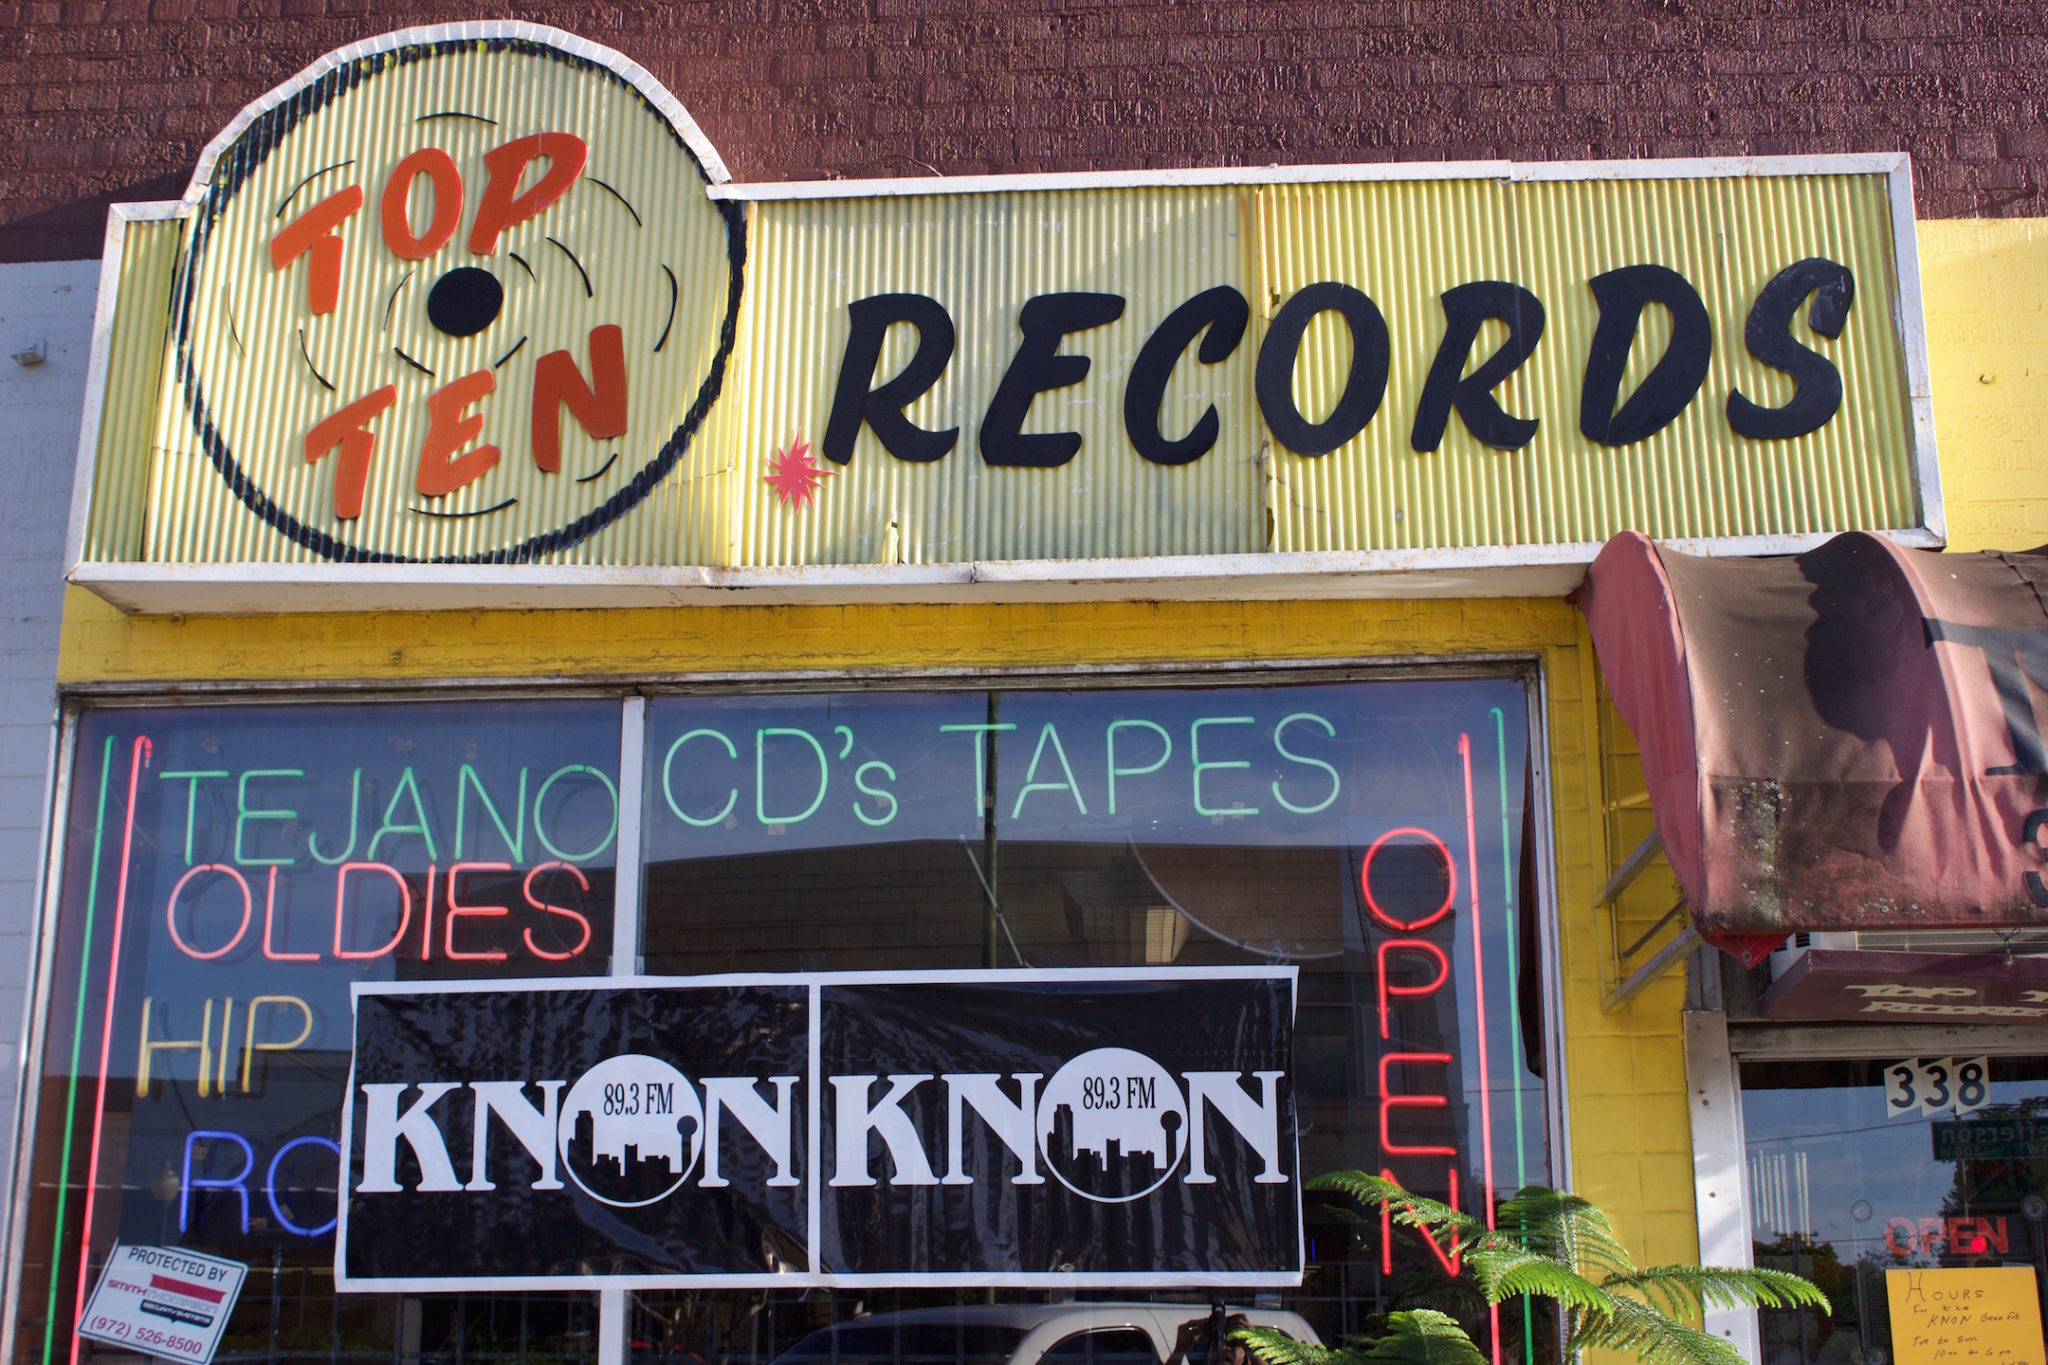 Top Ten Records hopes to become a music library in Dallas